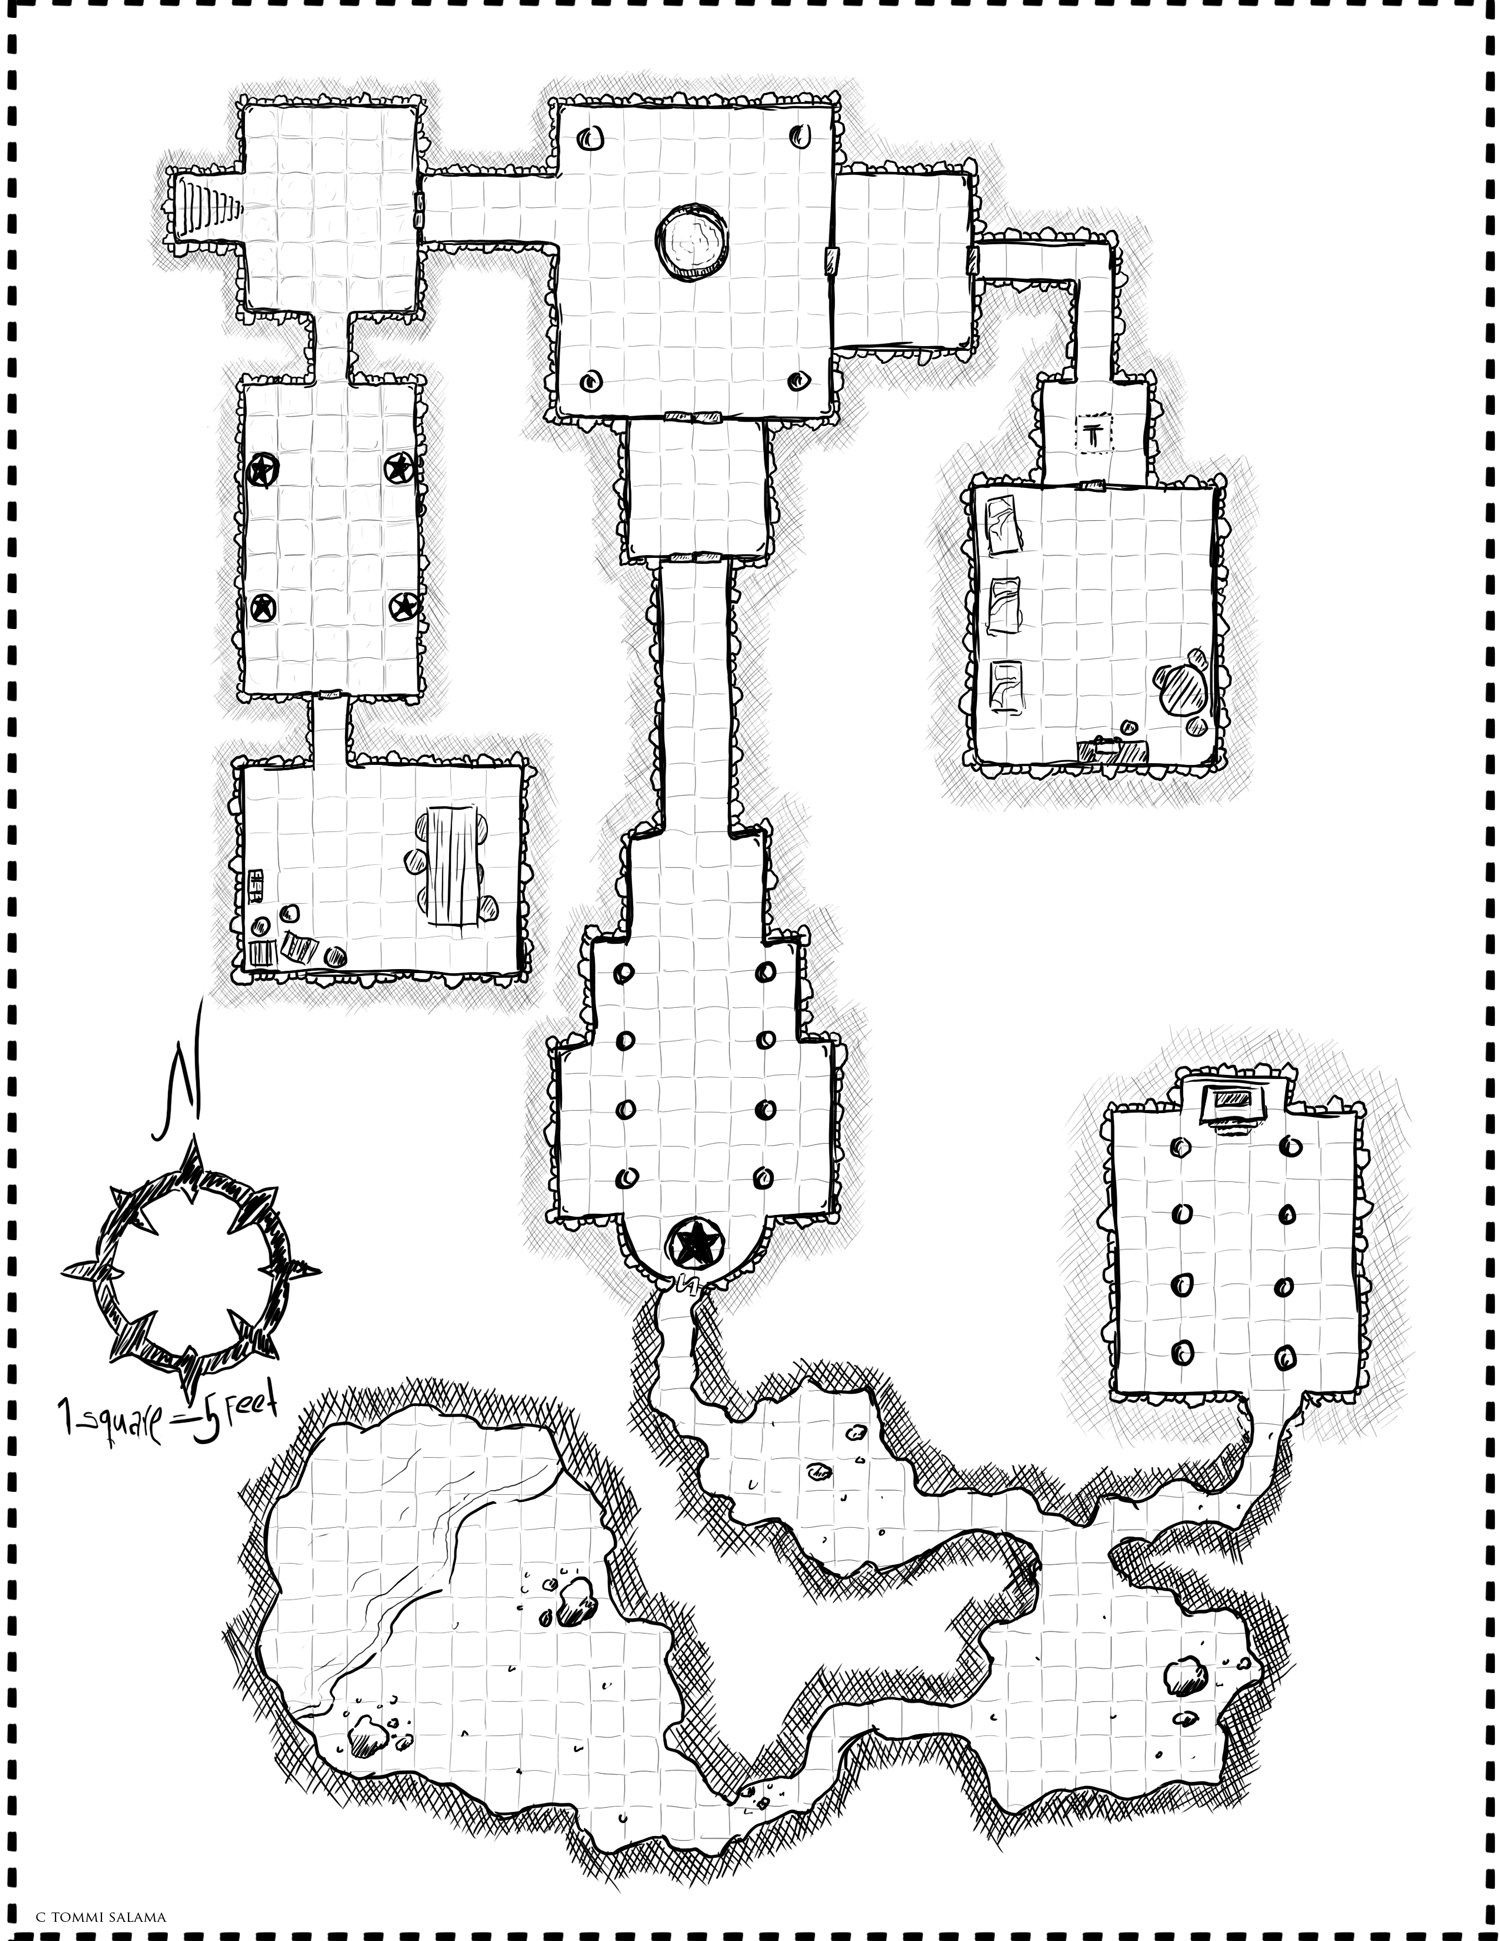 Dungeon sketching in Photoshop with graphic tablet.